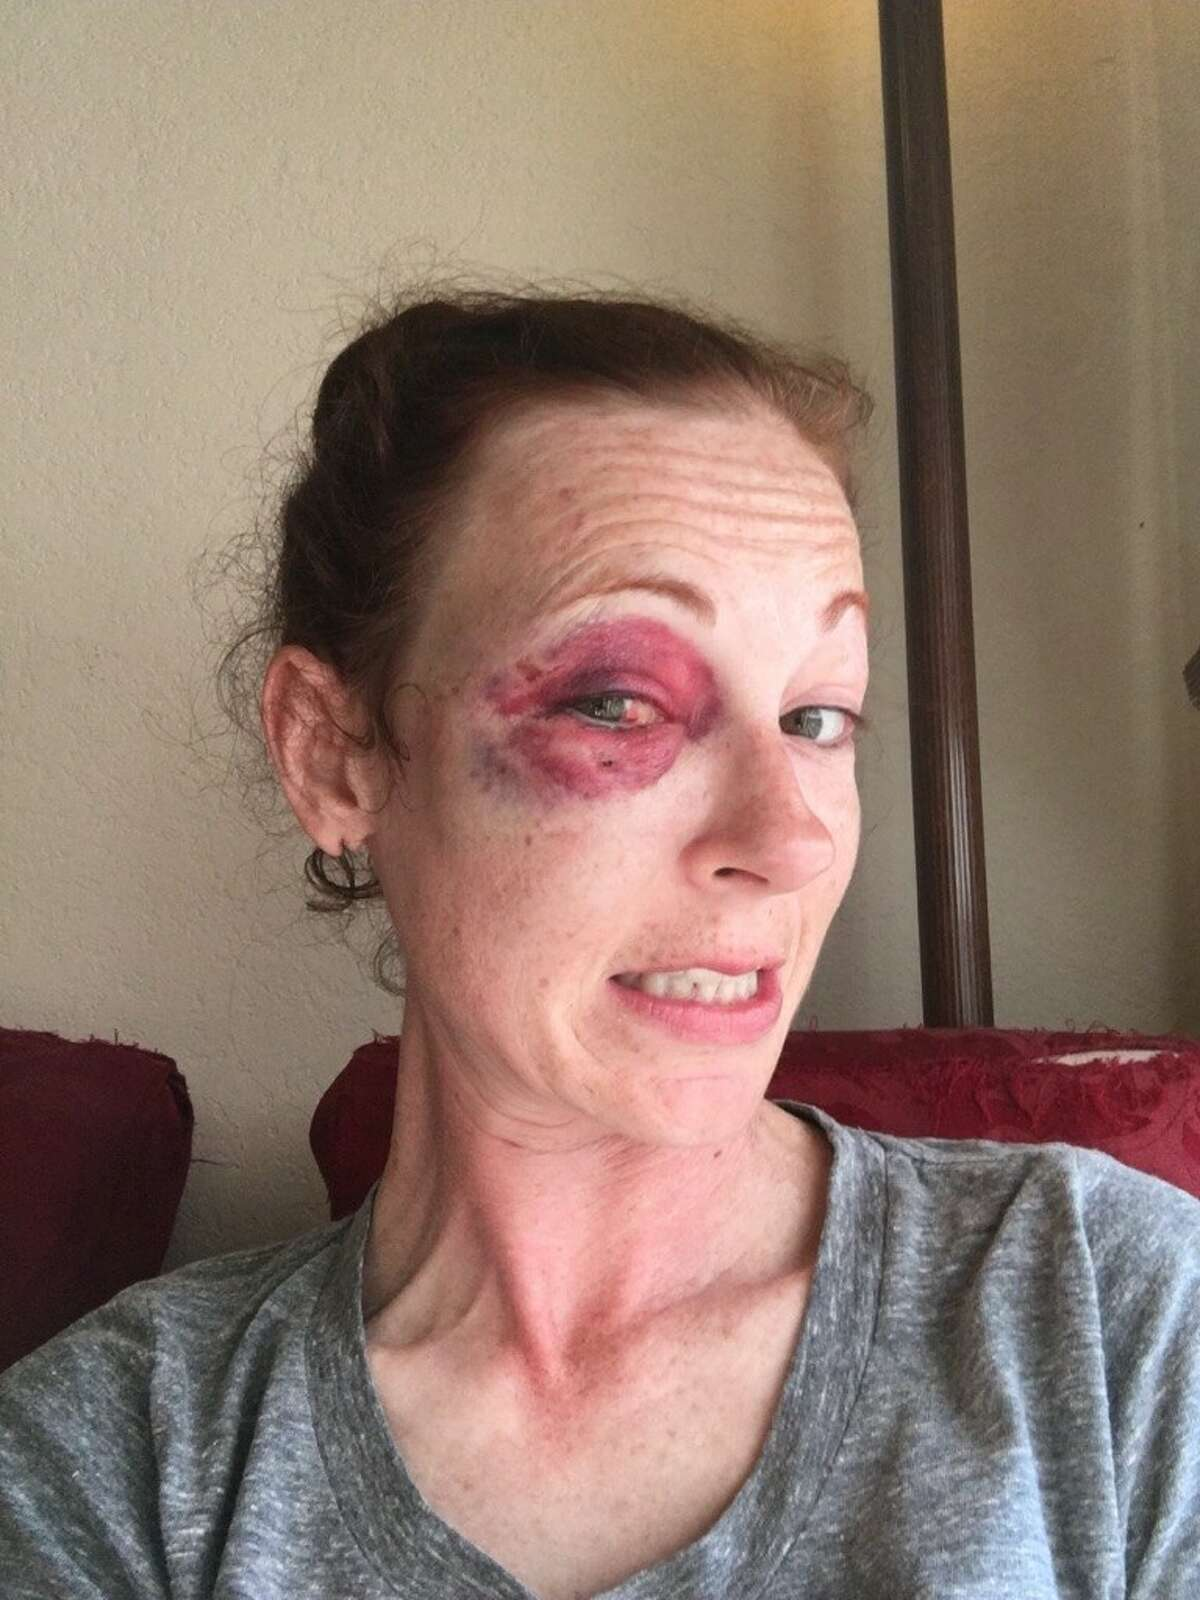 Tatum Weeks says she was violently attacked inside her apartment on Feb. 18, 2016.Read more: Violent break-in has residents of quiet neighborhood near Alamo Heights on edge